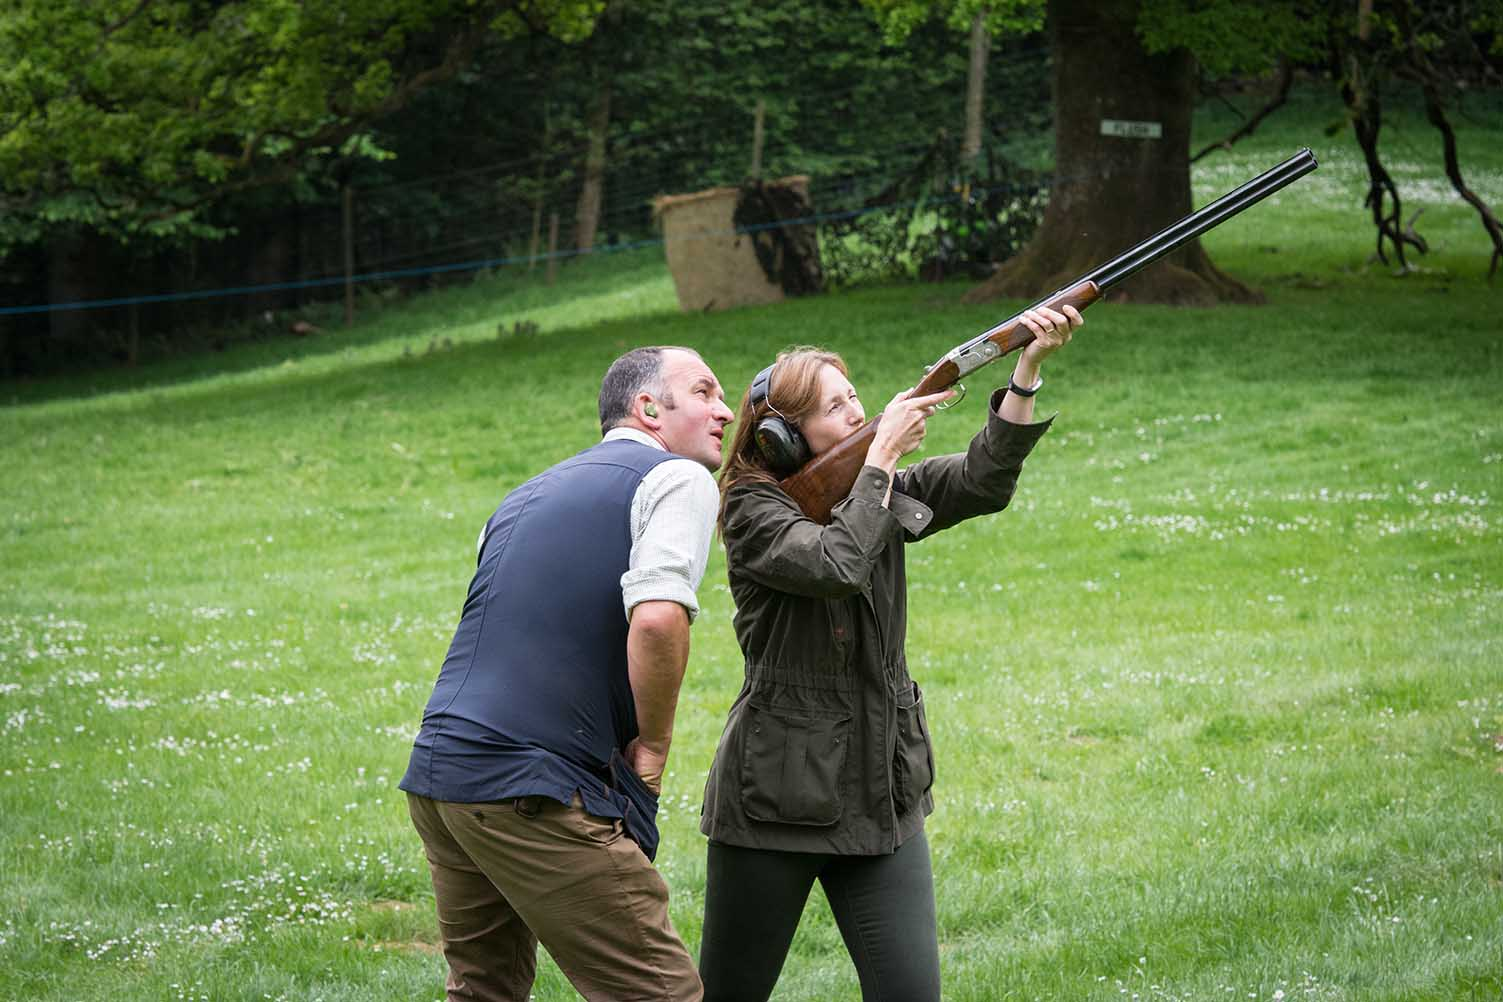 An image of Vicki Smith Housekeeper with Ian Smith Headkeeper, clay pigeon shooting at the Edradynate May 2017 shoot day - Edradynate Estate, Perthshire - Luxury Country House and Sporting Estate for Rent in Scotland